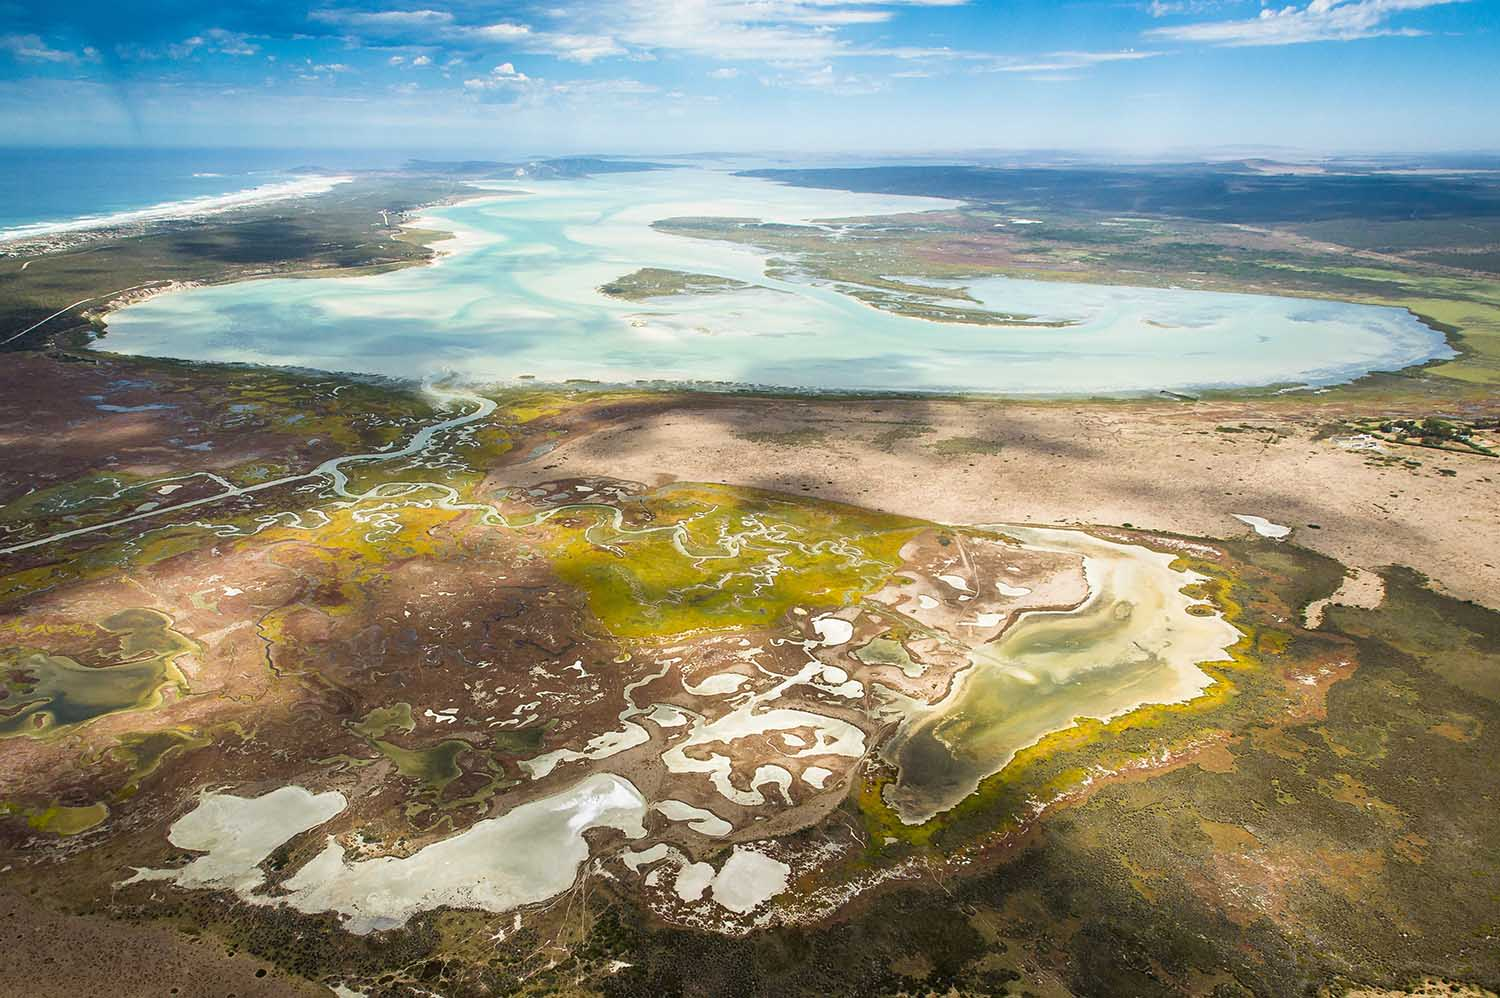 langebaan-marine-protected-areas-south-africa©PeterChadwick_AfricanConservationPhotographer_web.jpg